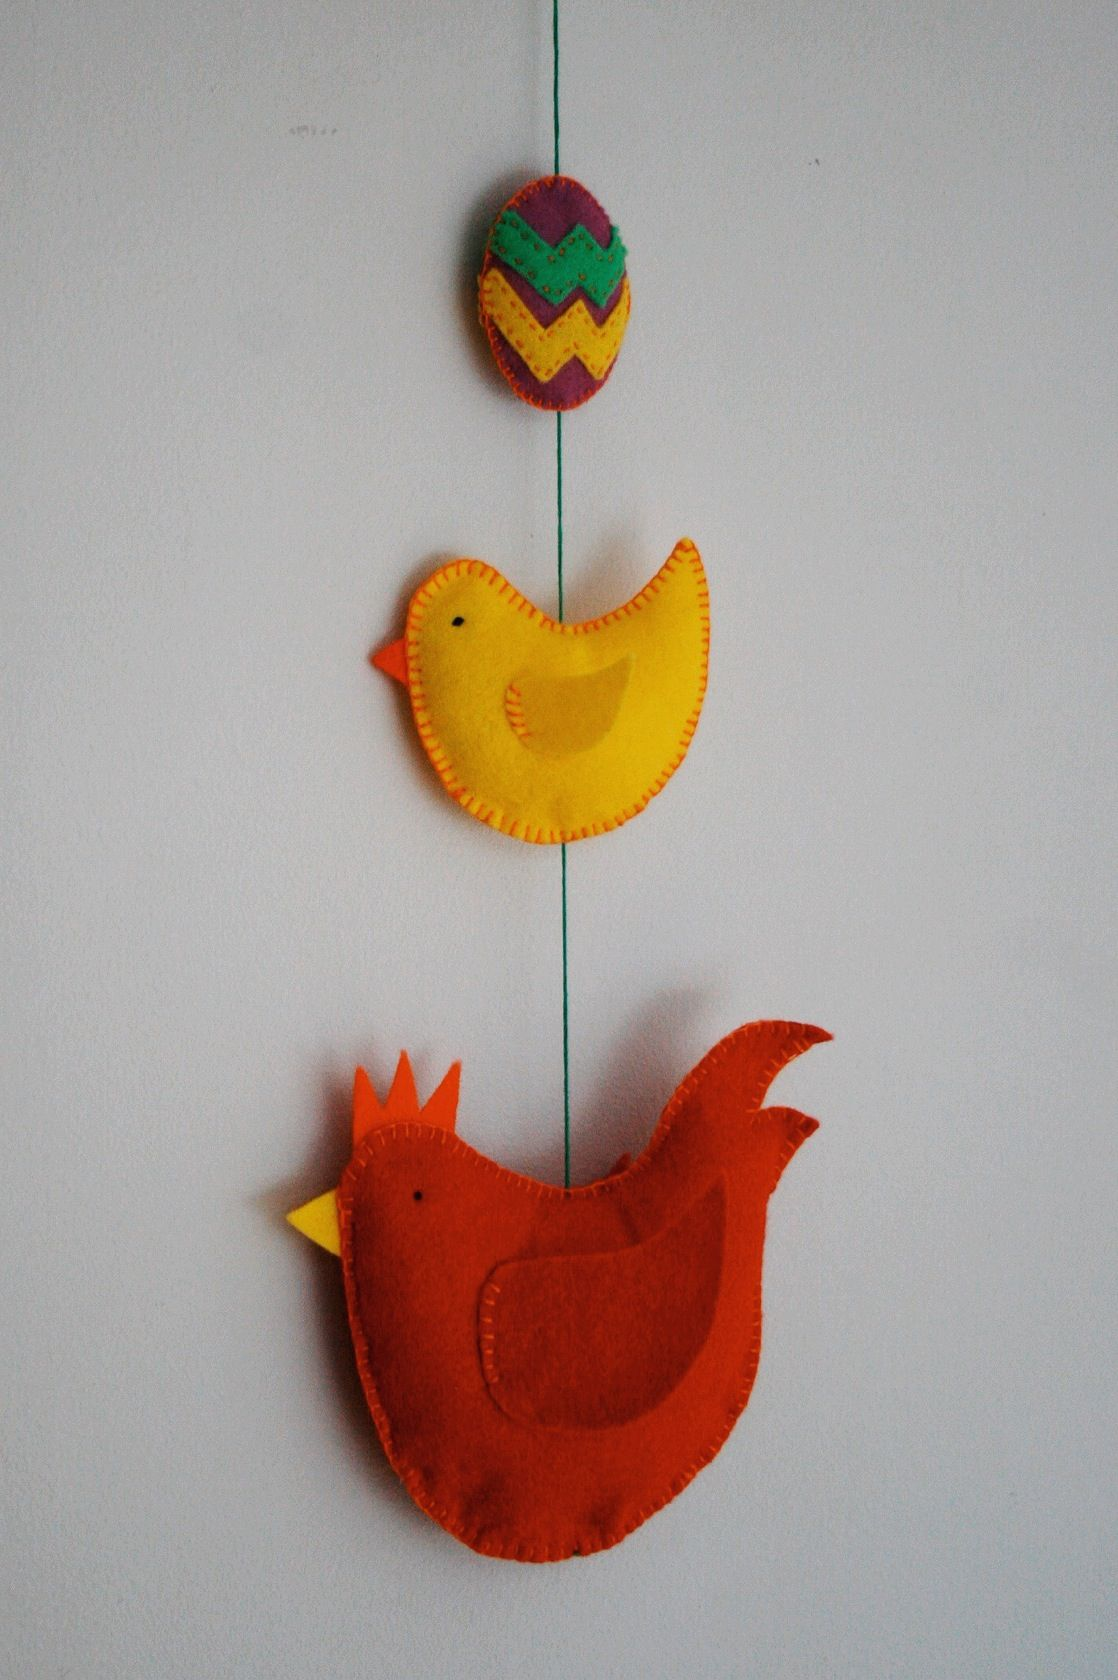 Bricolage De P Ques Facile 21 Id Es Essayer Tout De Suite Hanging Decorations Hens And Easter